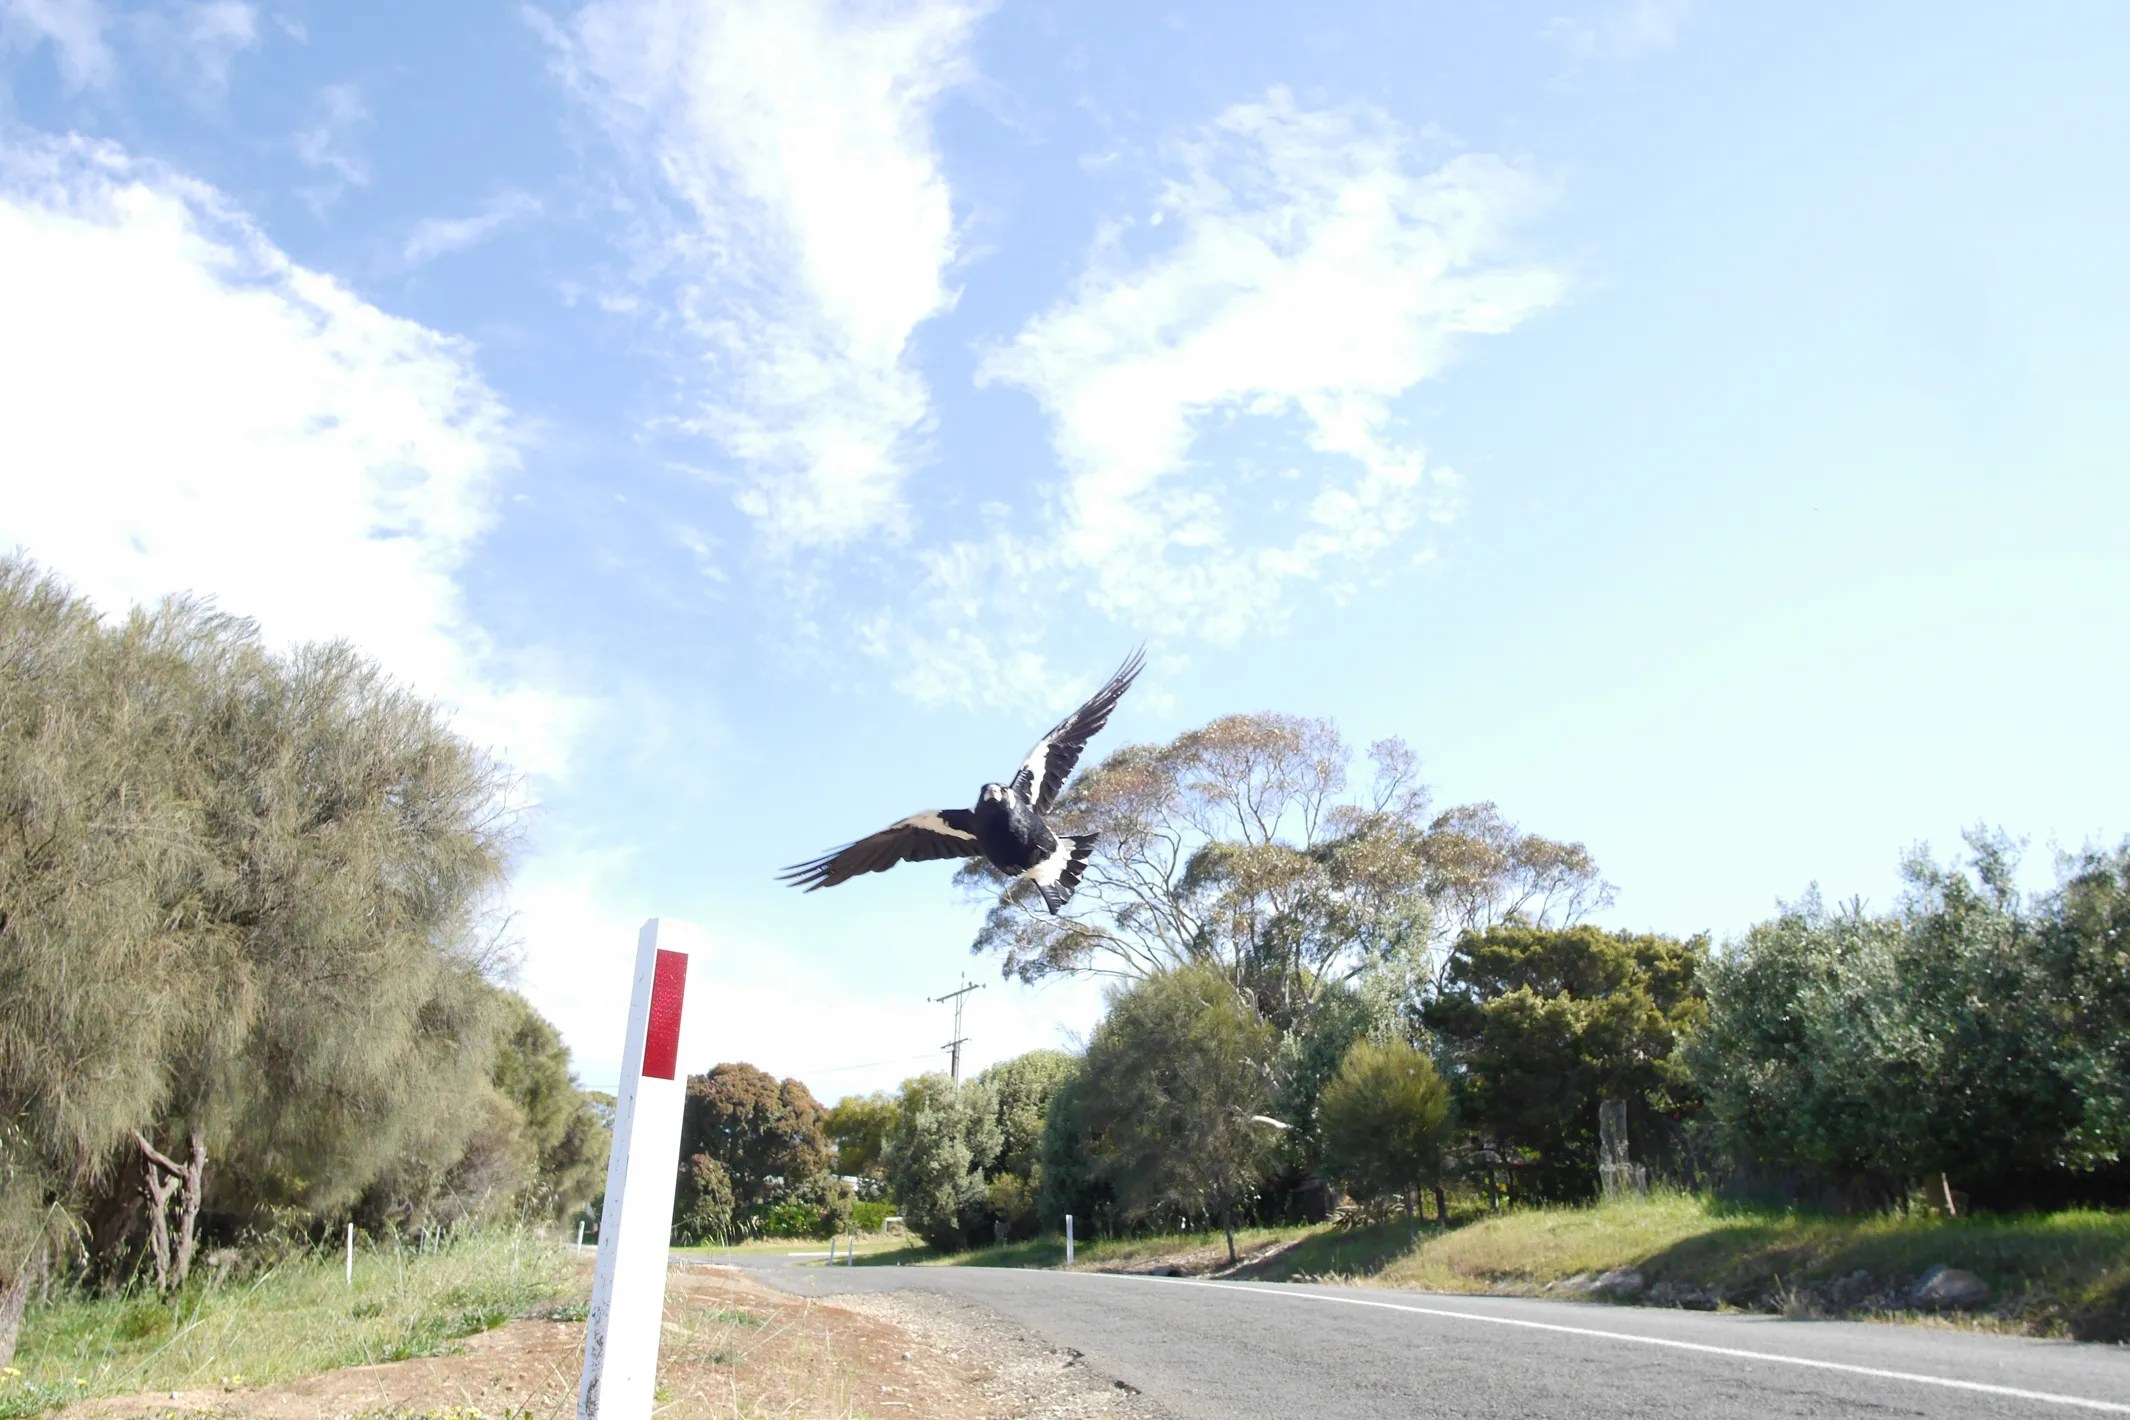 Bird attacks on humans are growing more common as people continue to encroach on bird nesting territory, wildlife experts warn. Swooping Magpie In Australia Attacks Cyclist Who Dies Fleeing Police